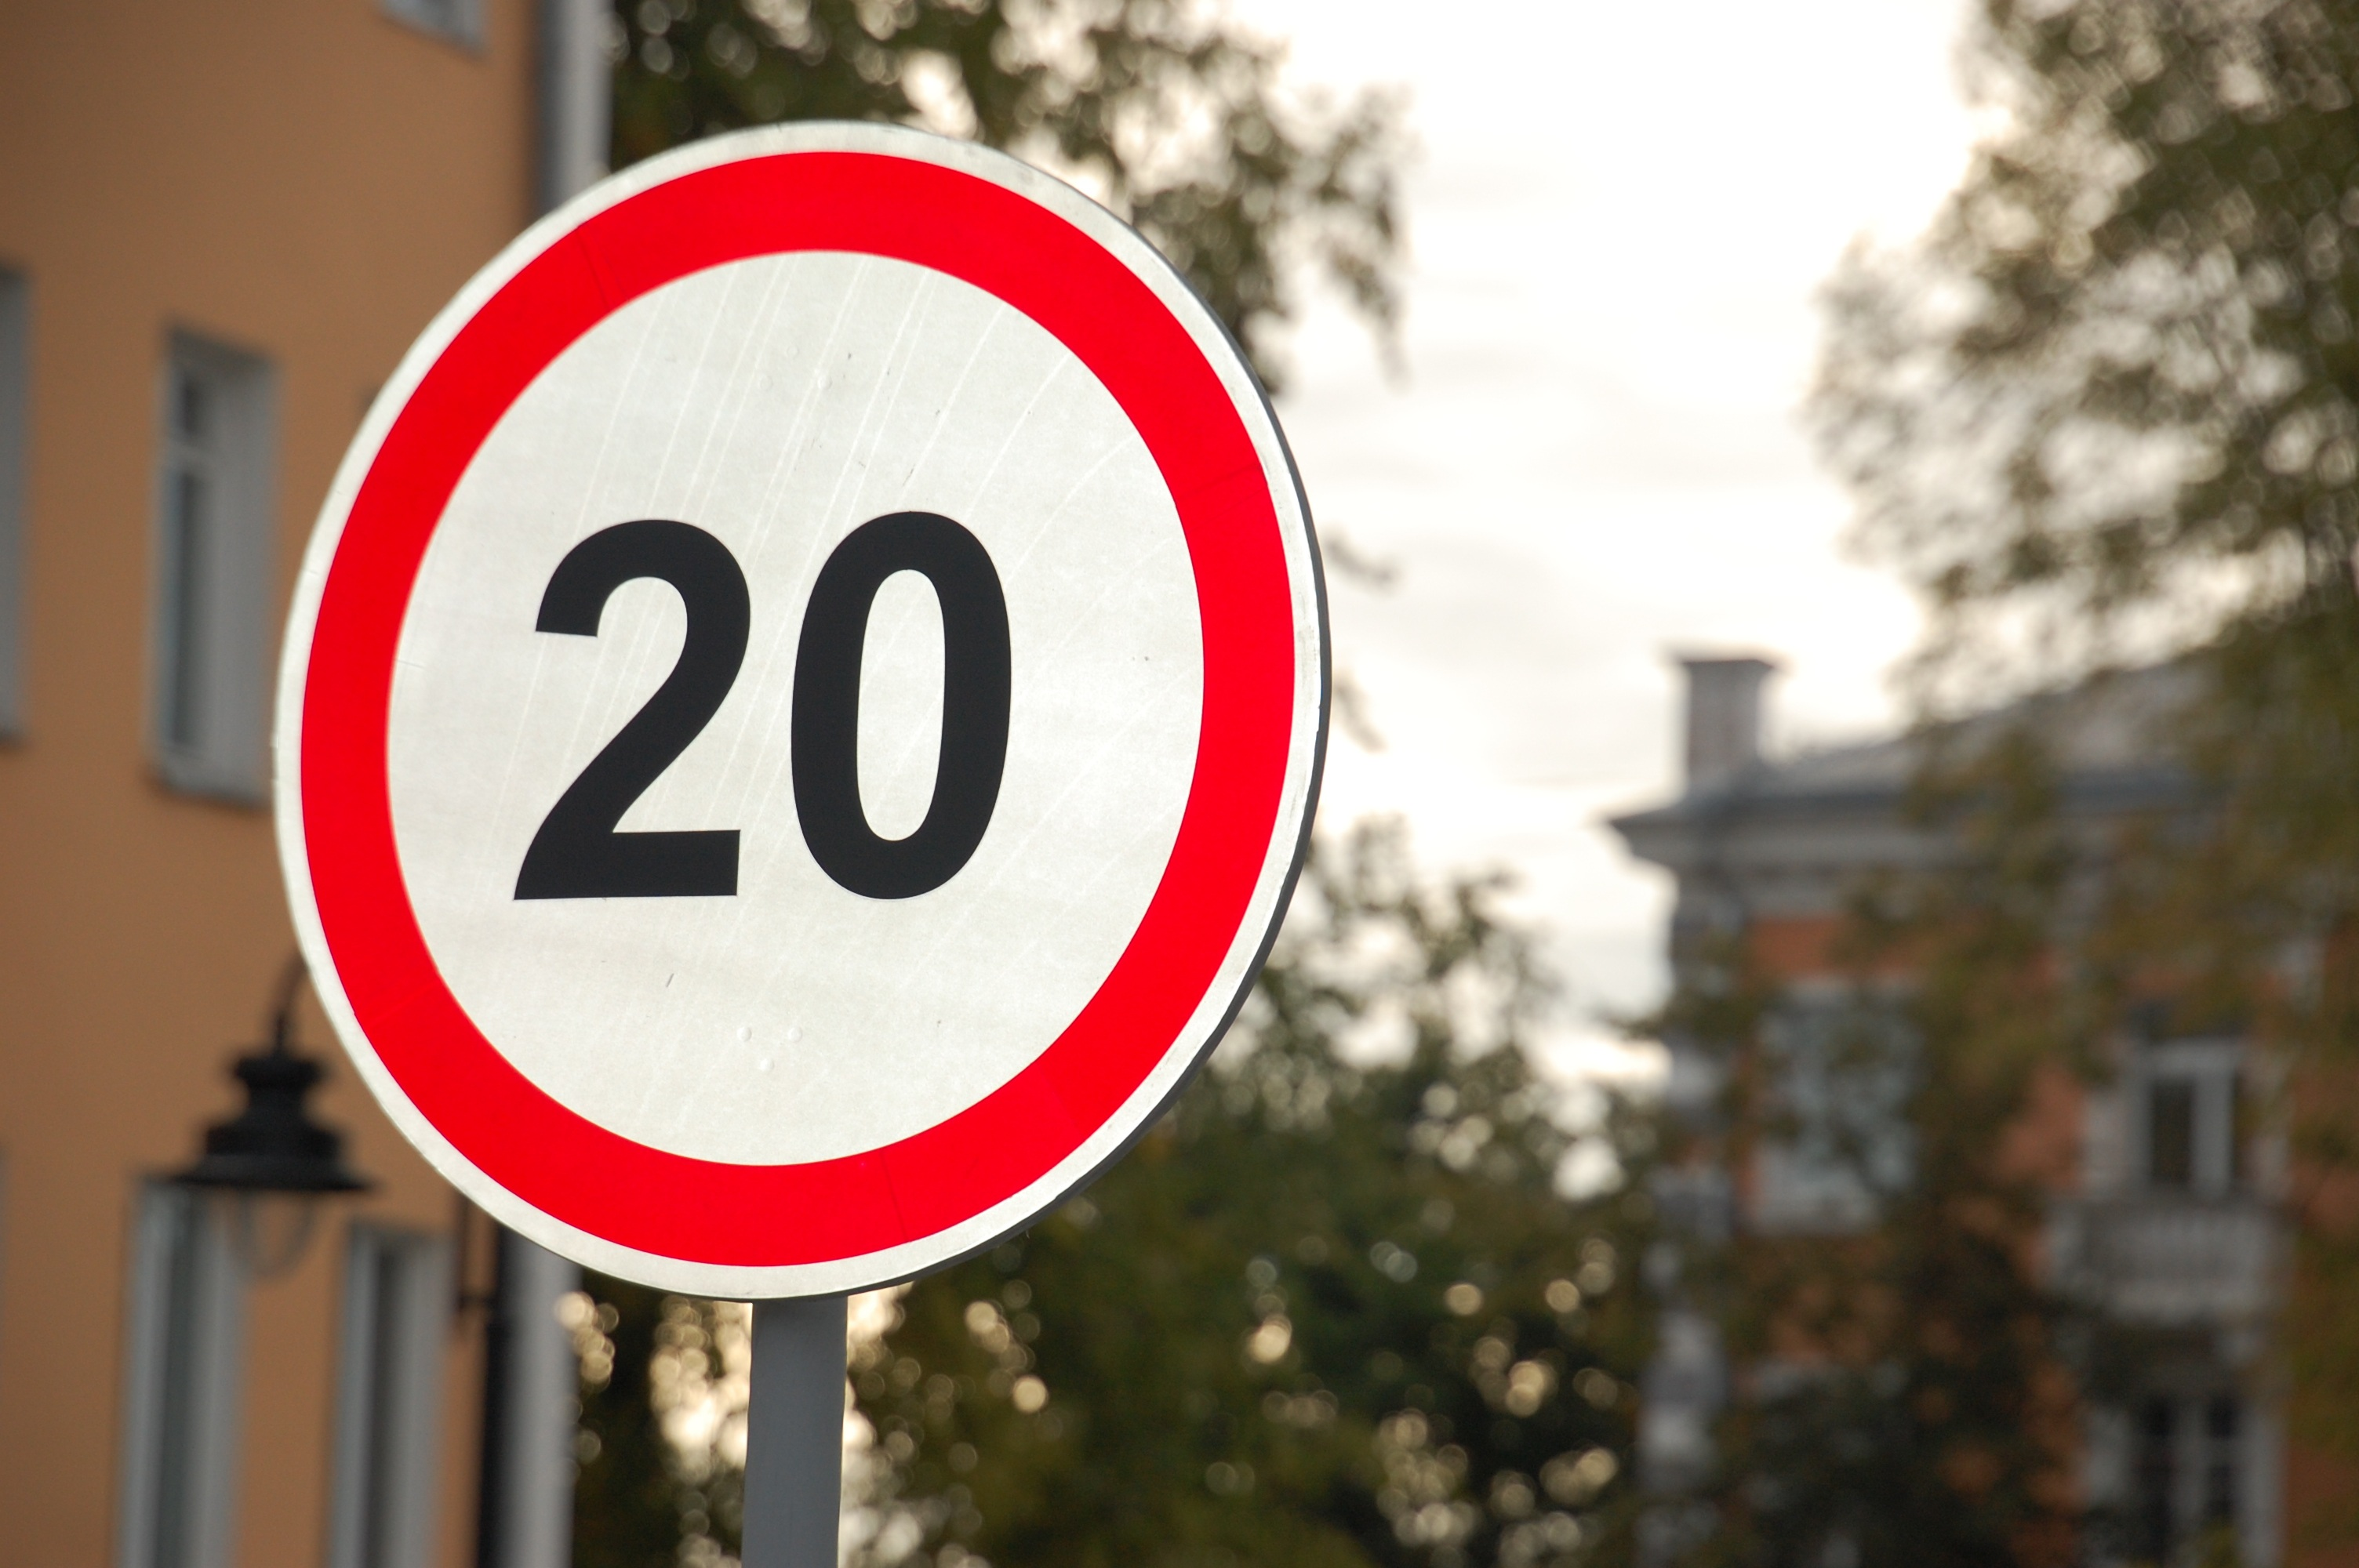 Congestion Charge Zone to get a 20mph limit image  .jpg (874 KB)